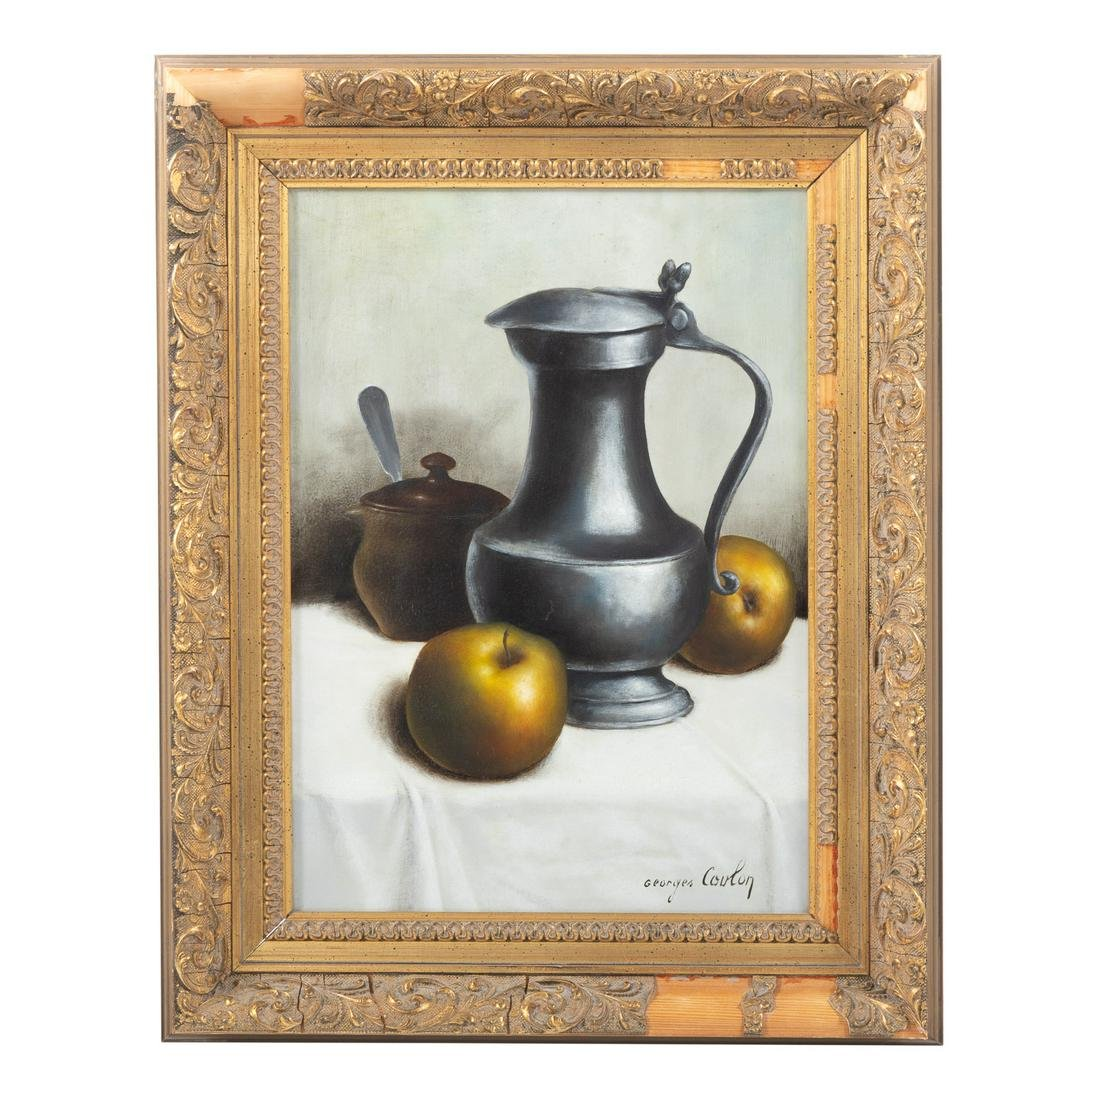 Georges Coulon. Still Life With Pewter Pitcher